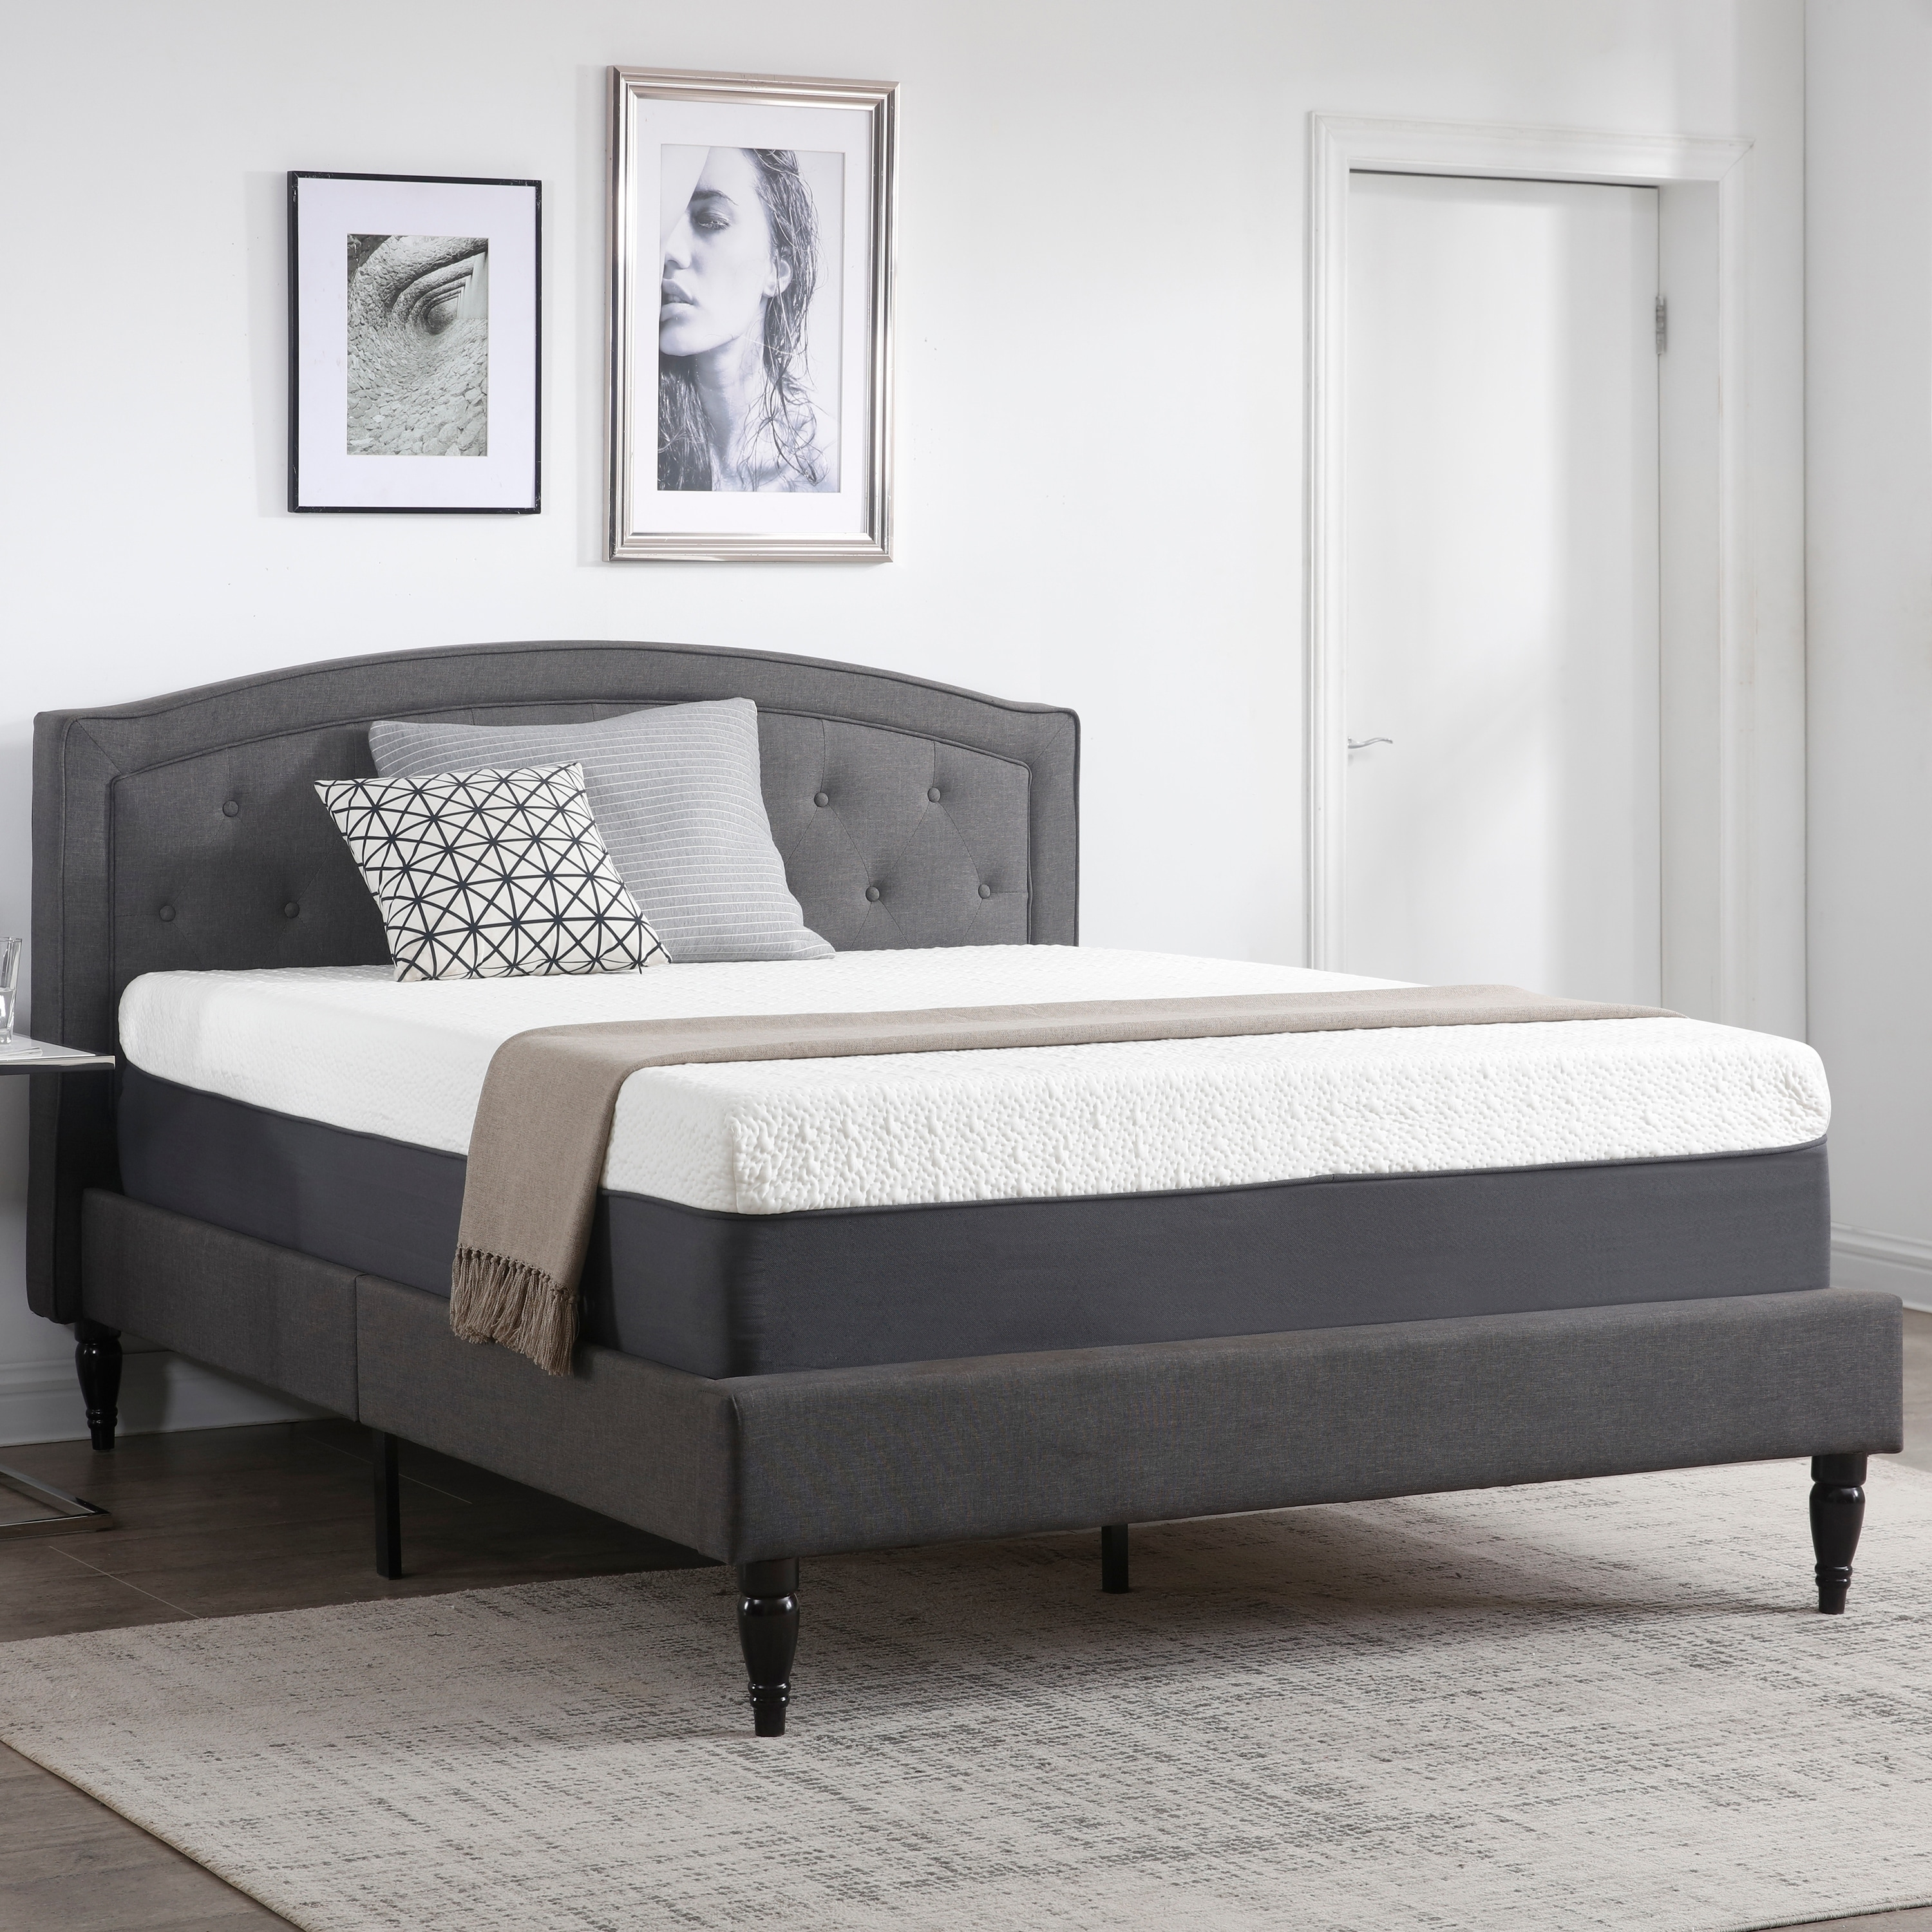 14 Inch Gel Infused Memory Foam Mattress With Certipur Us